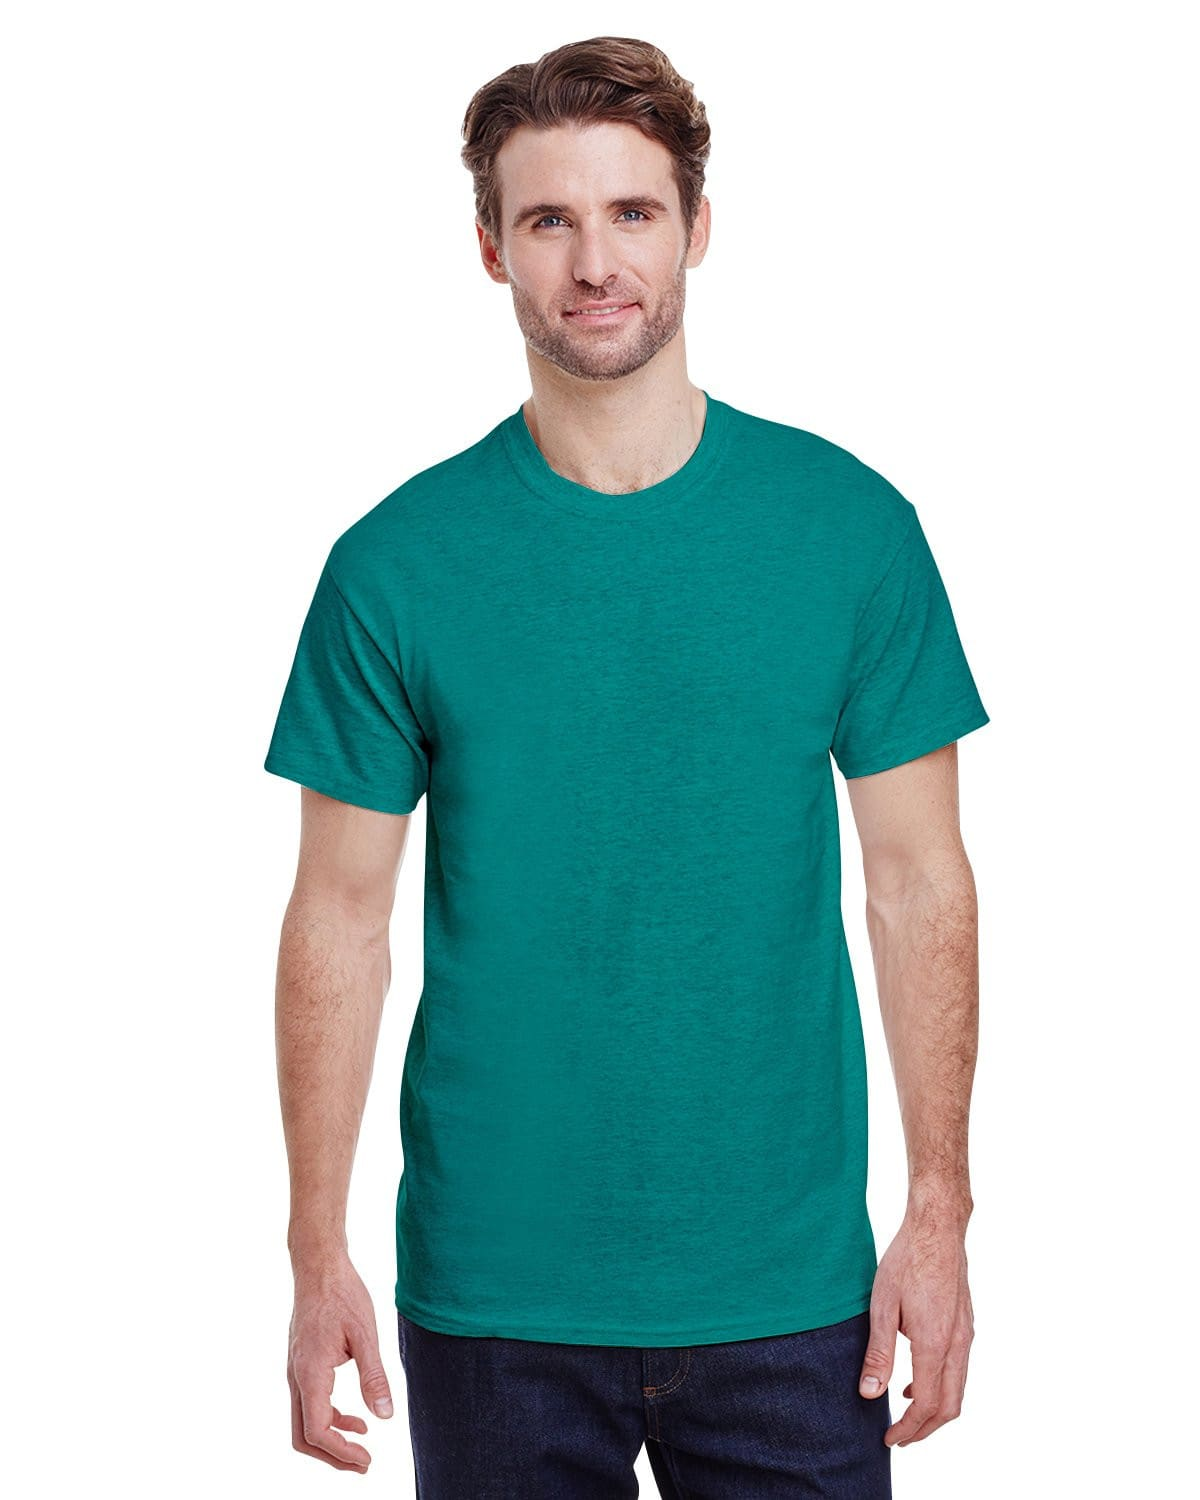 g500-adult-heavy-cotton-5-3oz-t-shirt-4xl-4XL-ANTIQU JADE DOME-Oasispromos